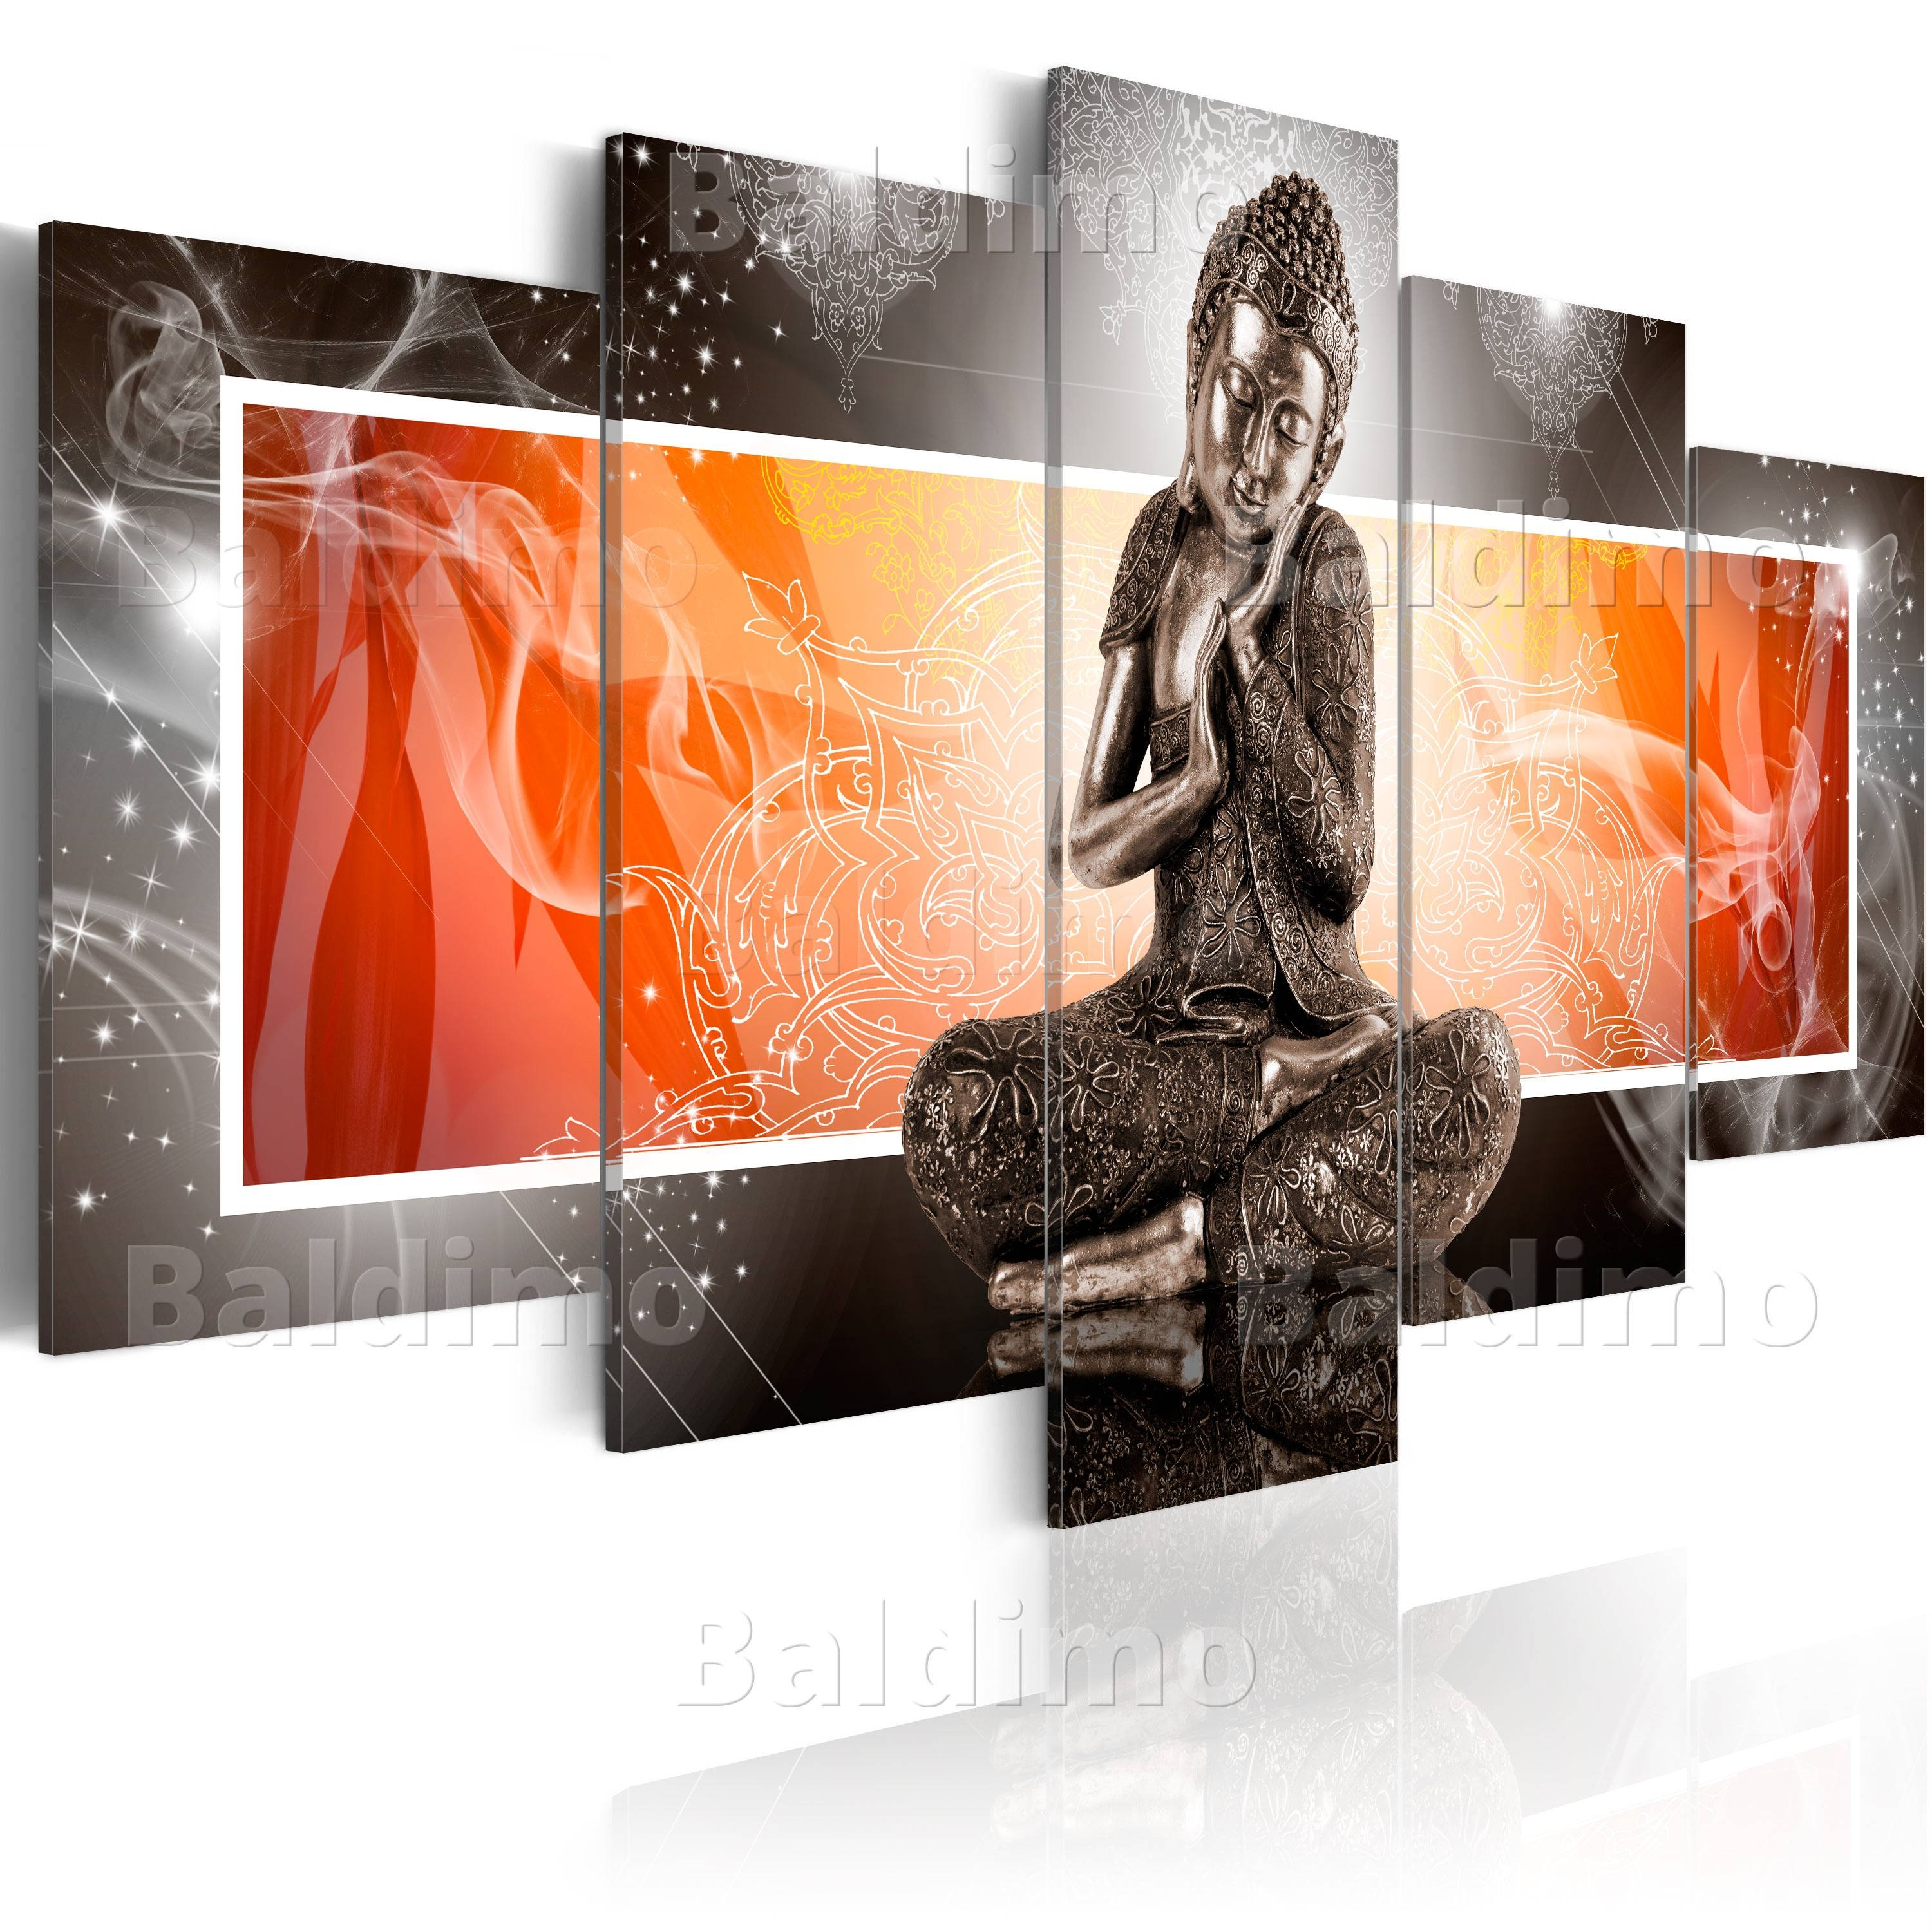 Large Canvas Wall Art Print + Image + Picture + Photo Buddha Within Most Up To Date Large Buddha Wall Art (View 12 of 15)